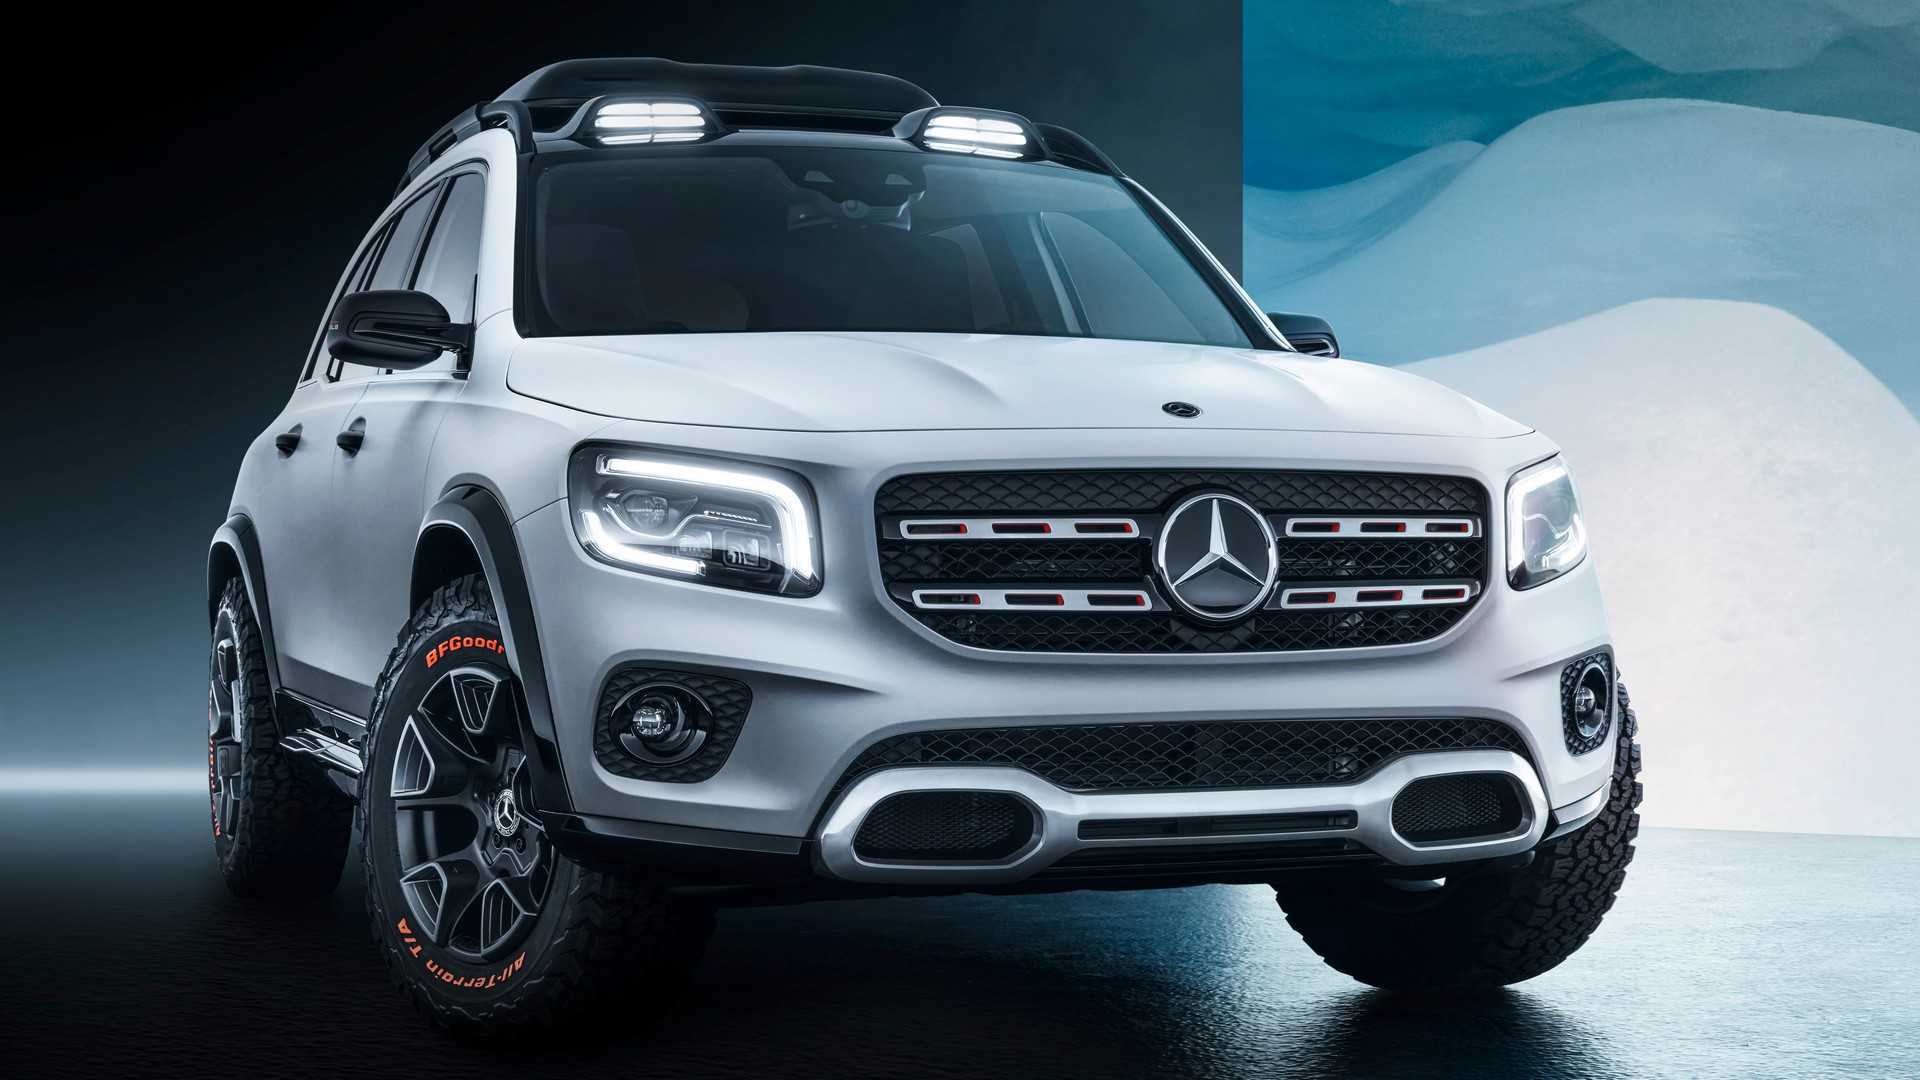 German car manufacturer Mercedes-Benz has started its 2019 Auto Shanghai program with the reveal of the Mercedes-Benz GLB, an SUV that looks like a downsized version of the Geländewagen